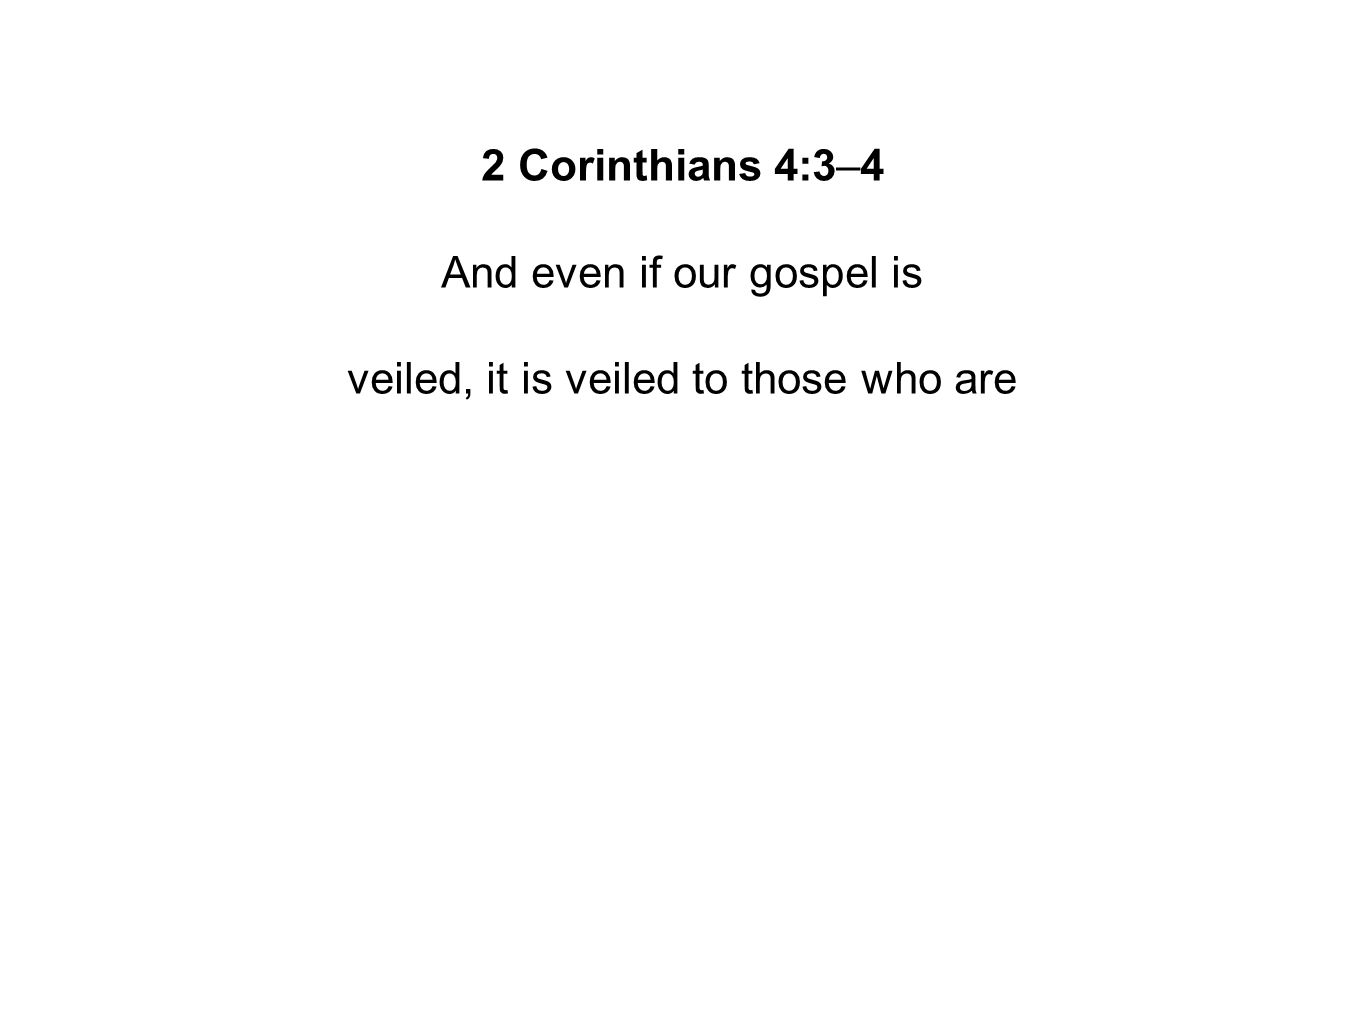 2 Corinthians 4:3–4 And even if our gospel is veiled, it is veiled to those who are